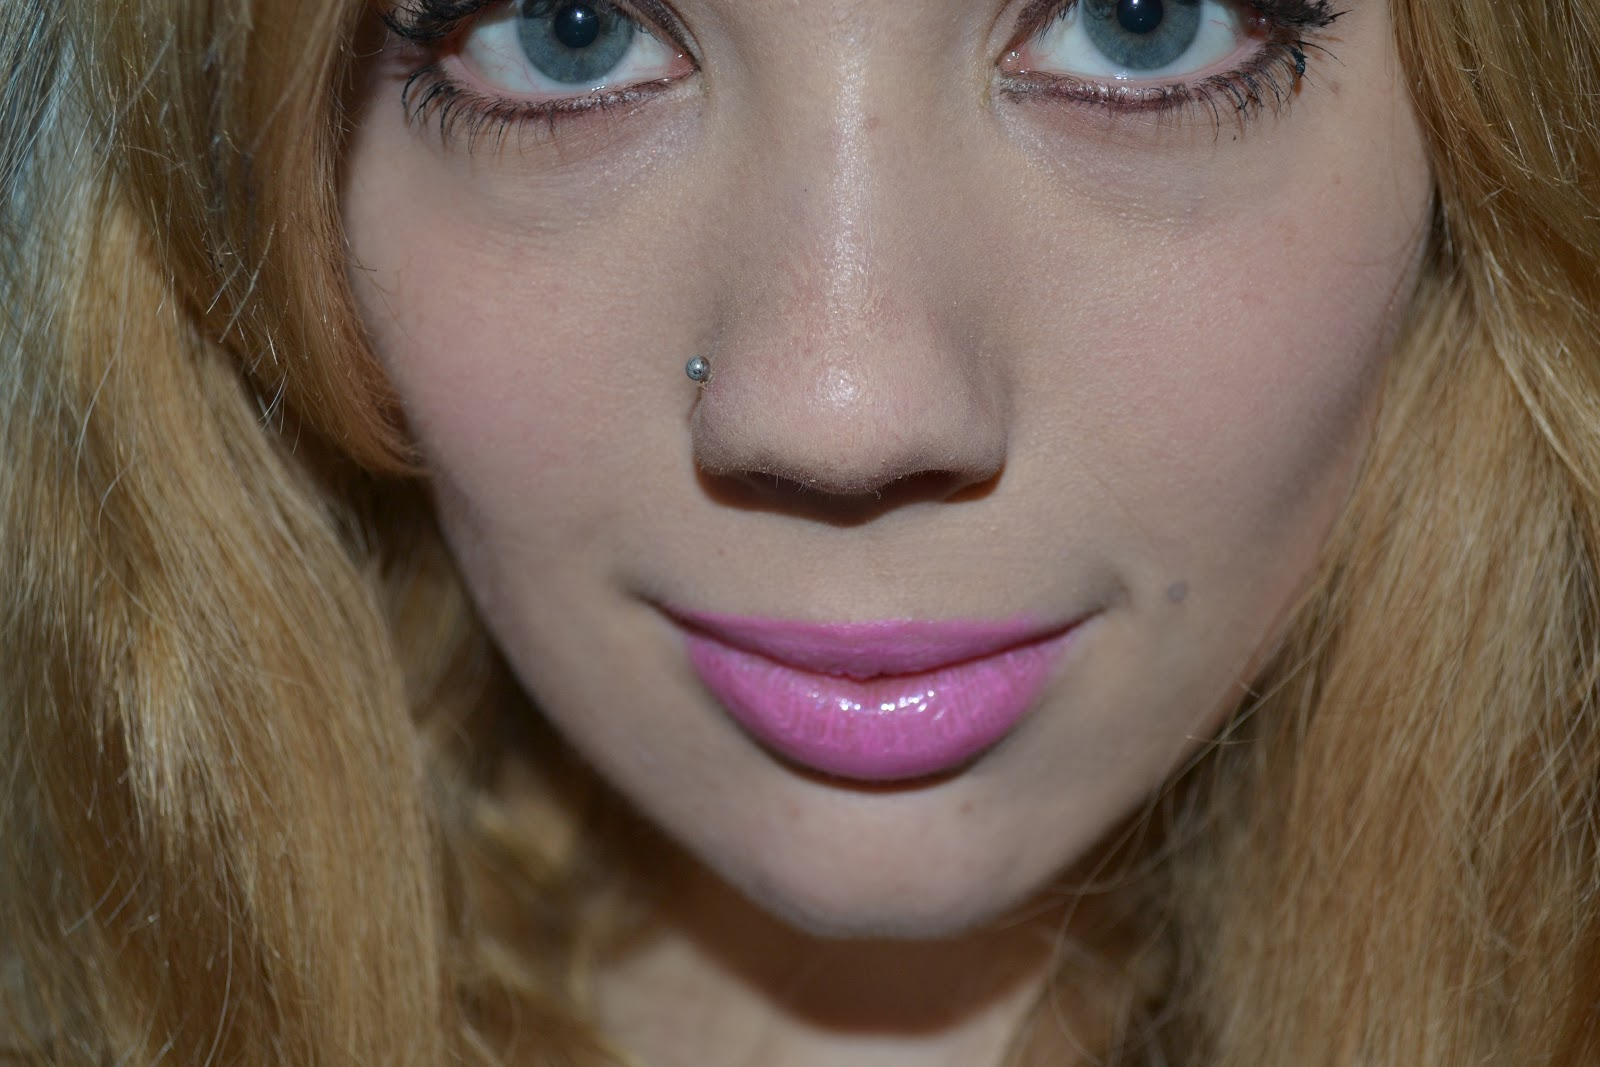 Forevermissvanity - A UK Lifestyle Blogger : Nose Piercing: Round Two